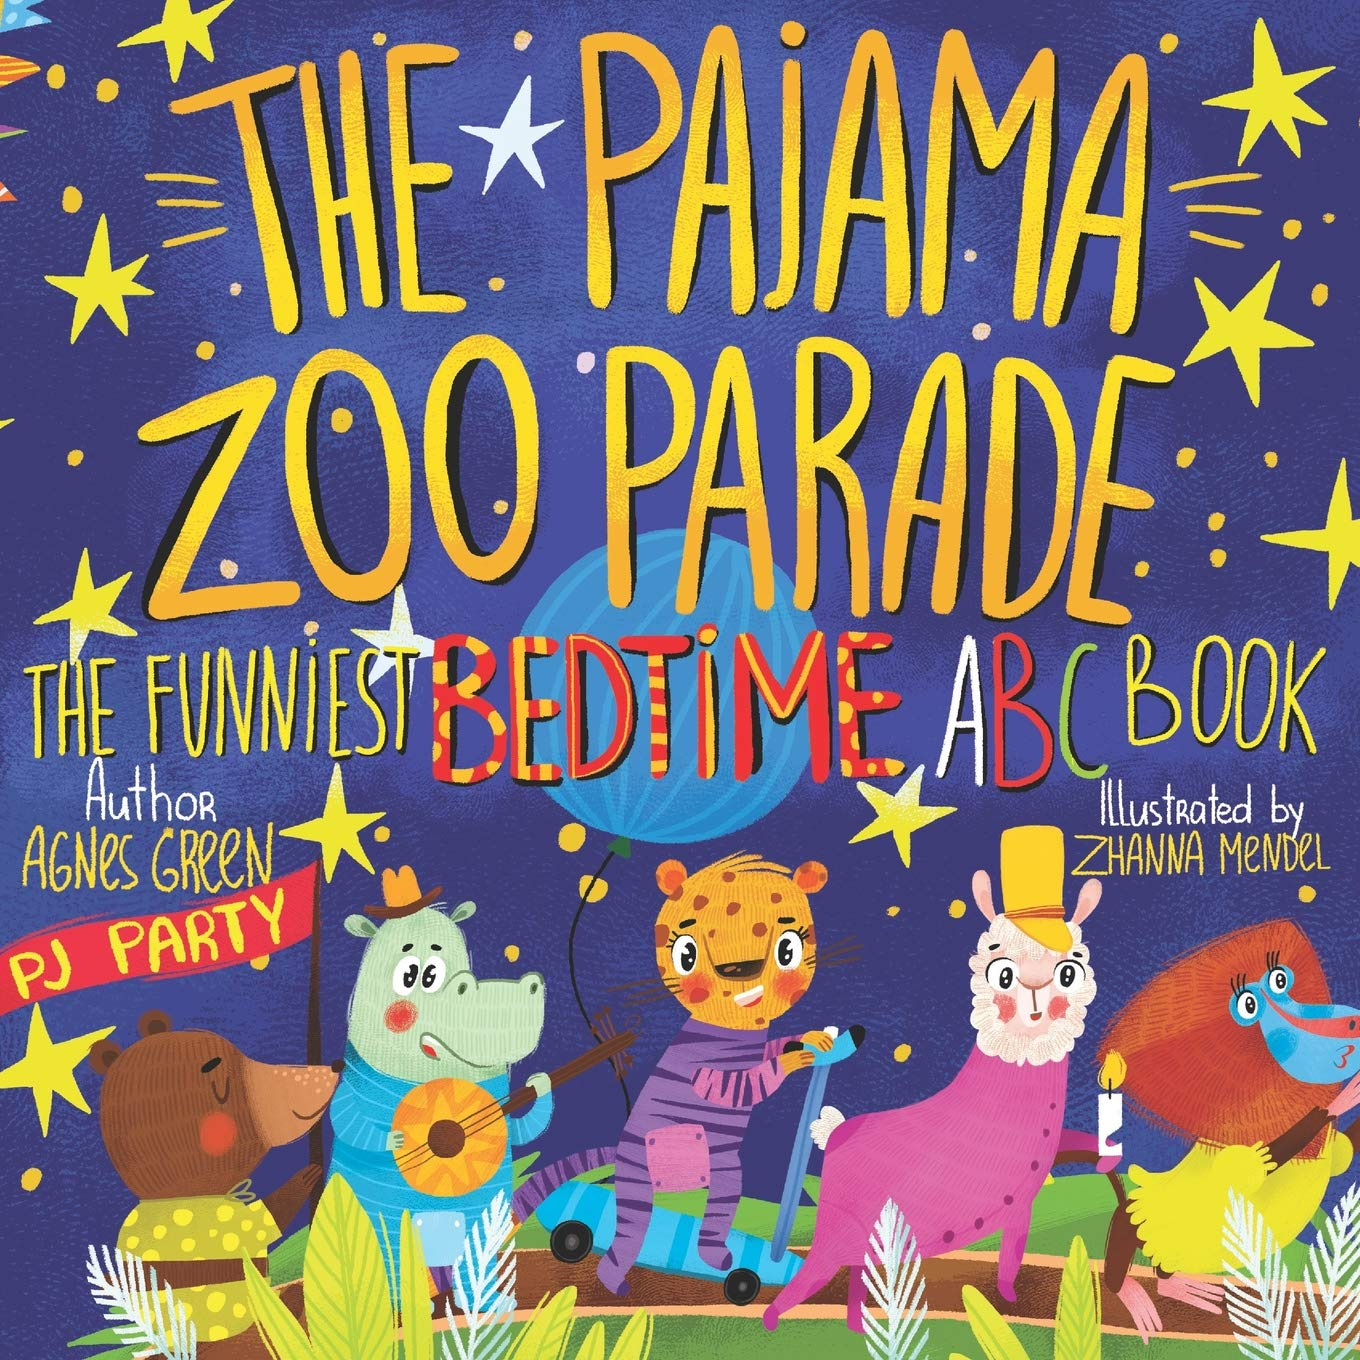 Read Online The Pajama Zoo Parade: The Funniest Bedtime ABC Book (The Funniest ABC Books) ebook